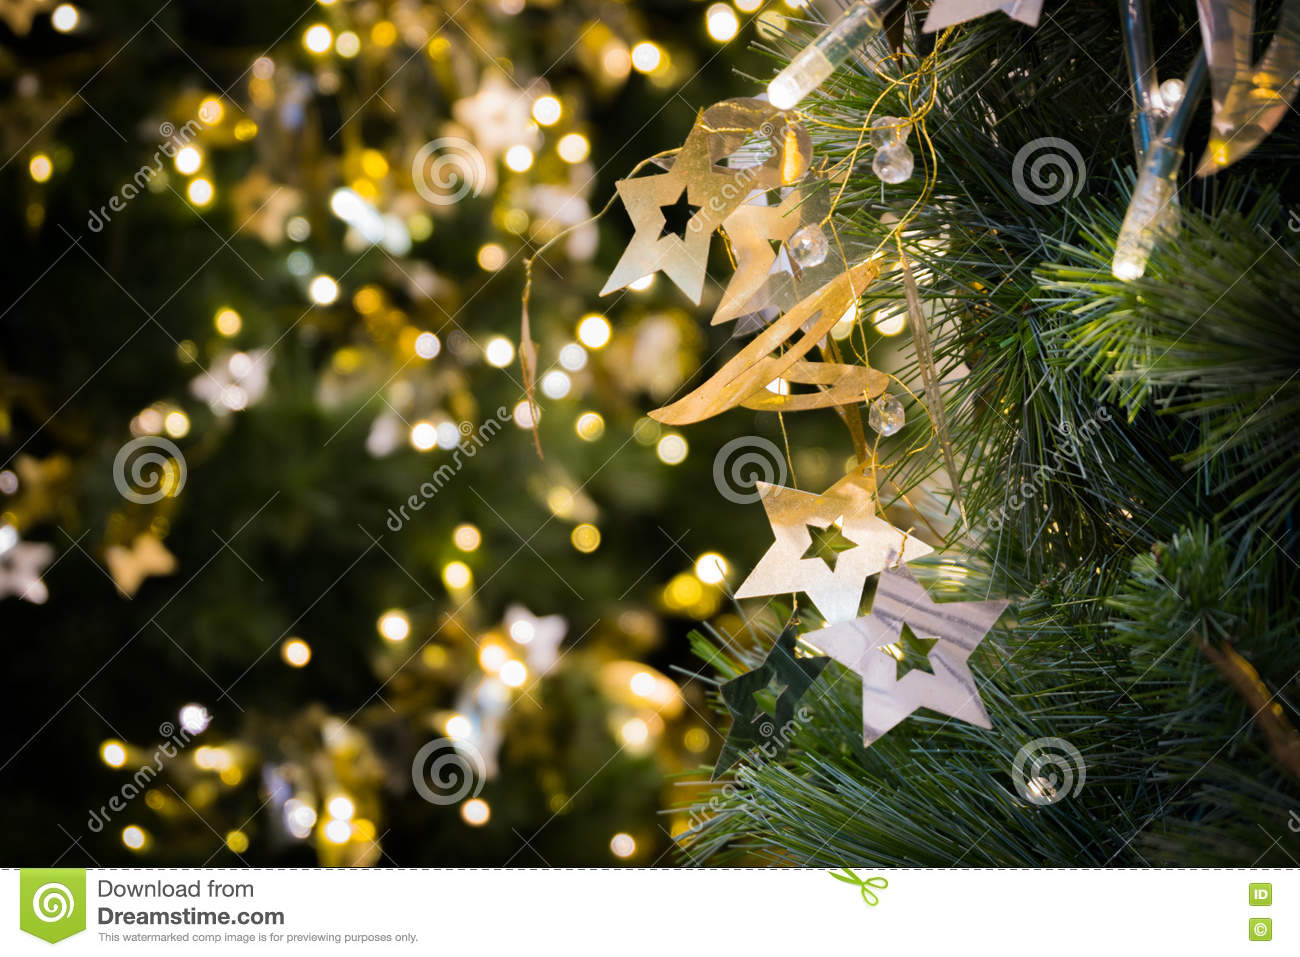 Star hanging on christmas tree with bokeh light in green yellow golden color, holiday abstract background, blur defocused